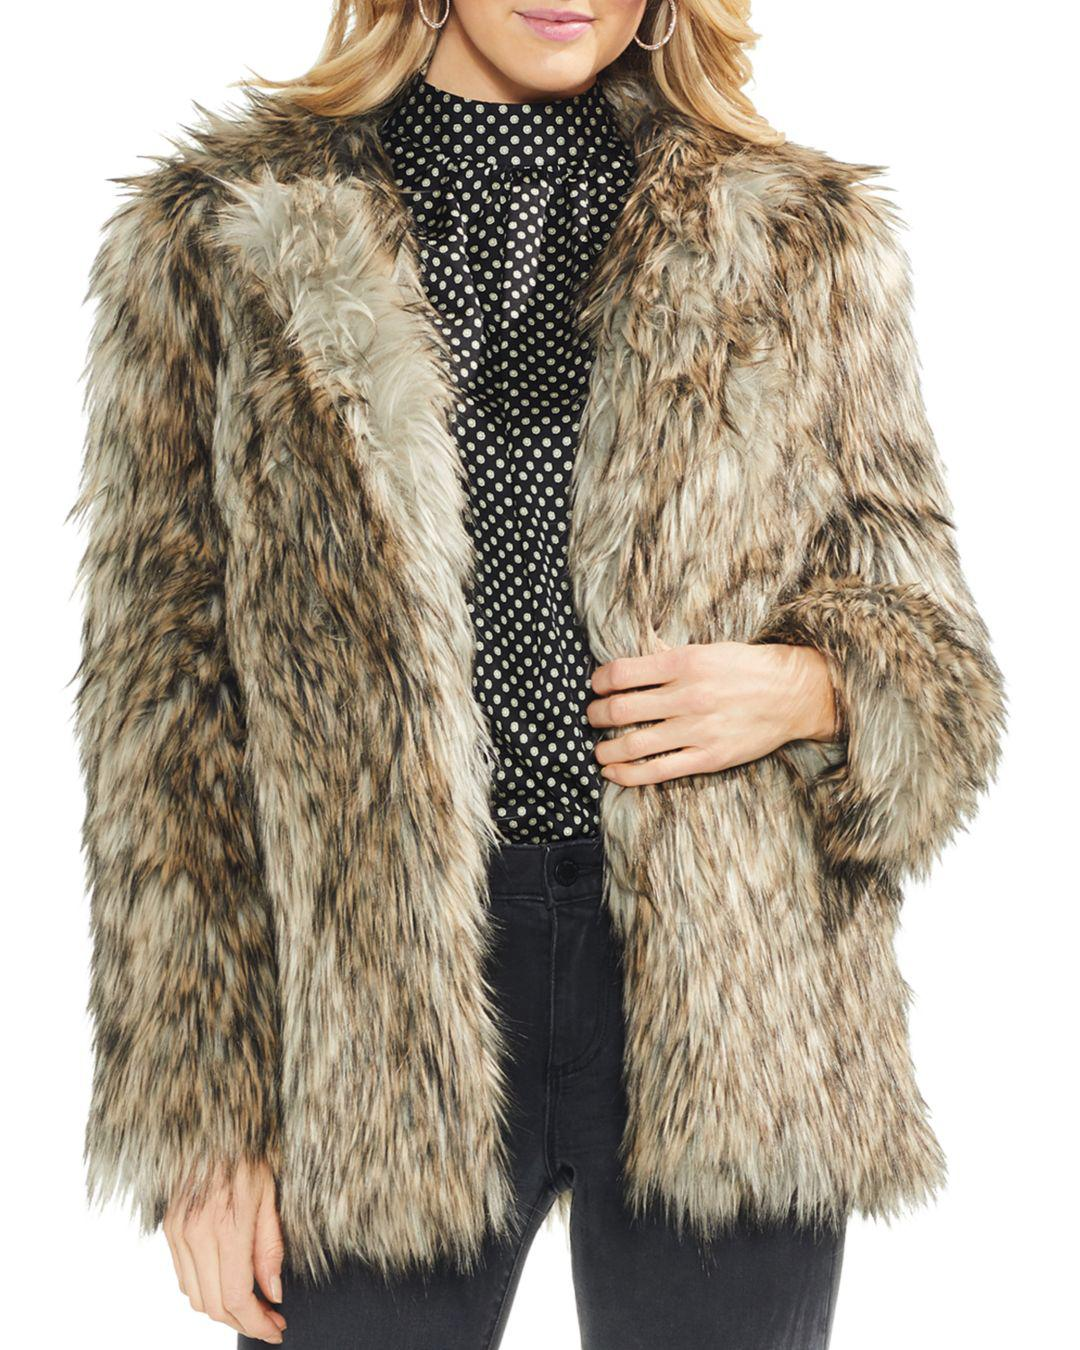 c6a7f17feb1 Lyst - Vince Camuto Faux Fur Jacket in Brown - Save 58%